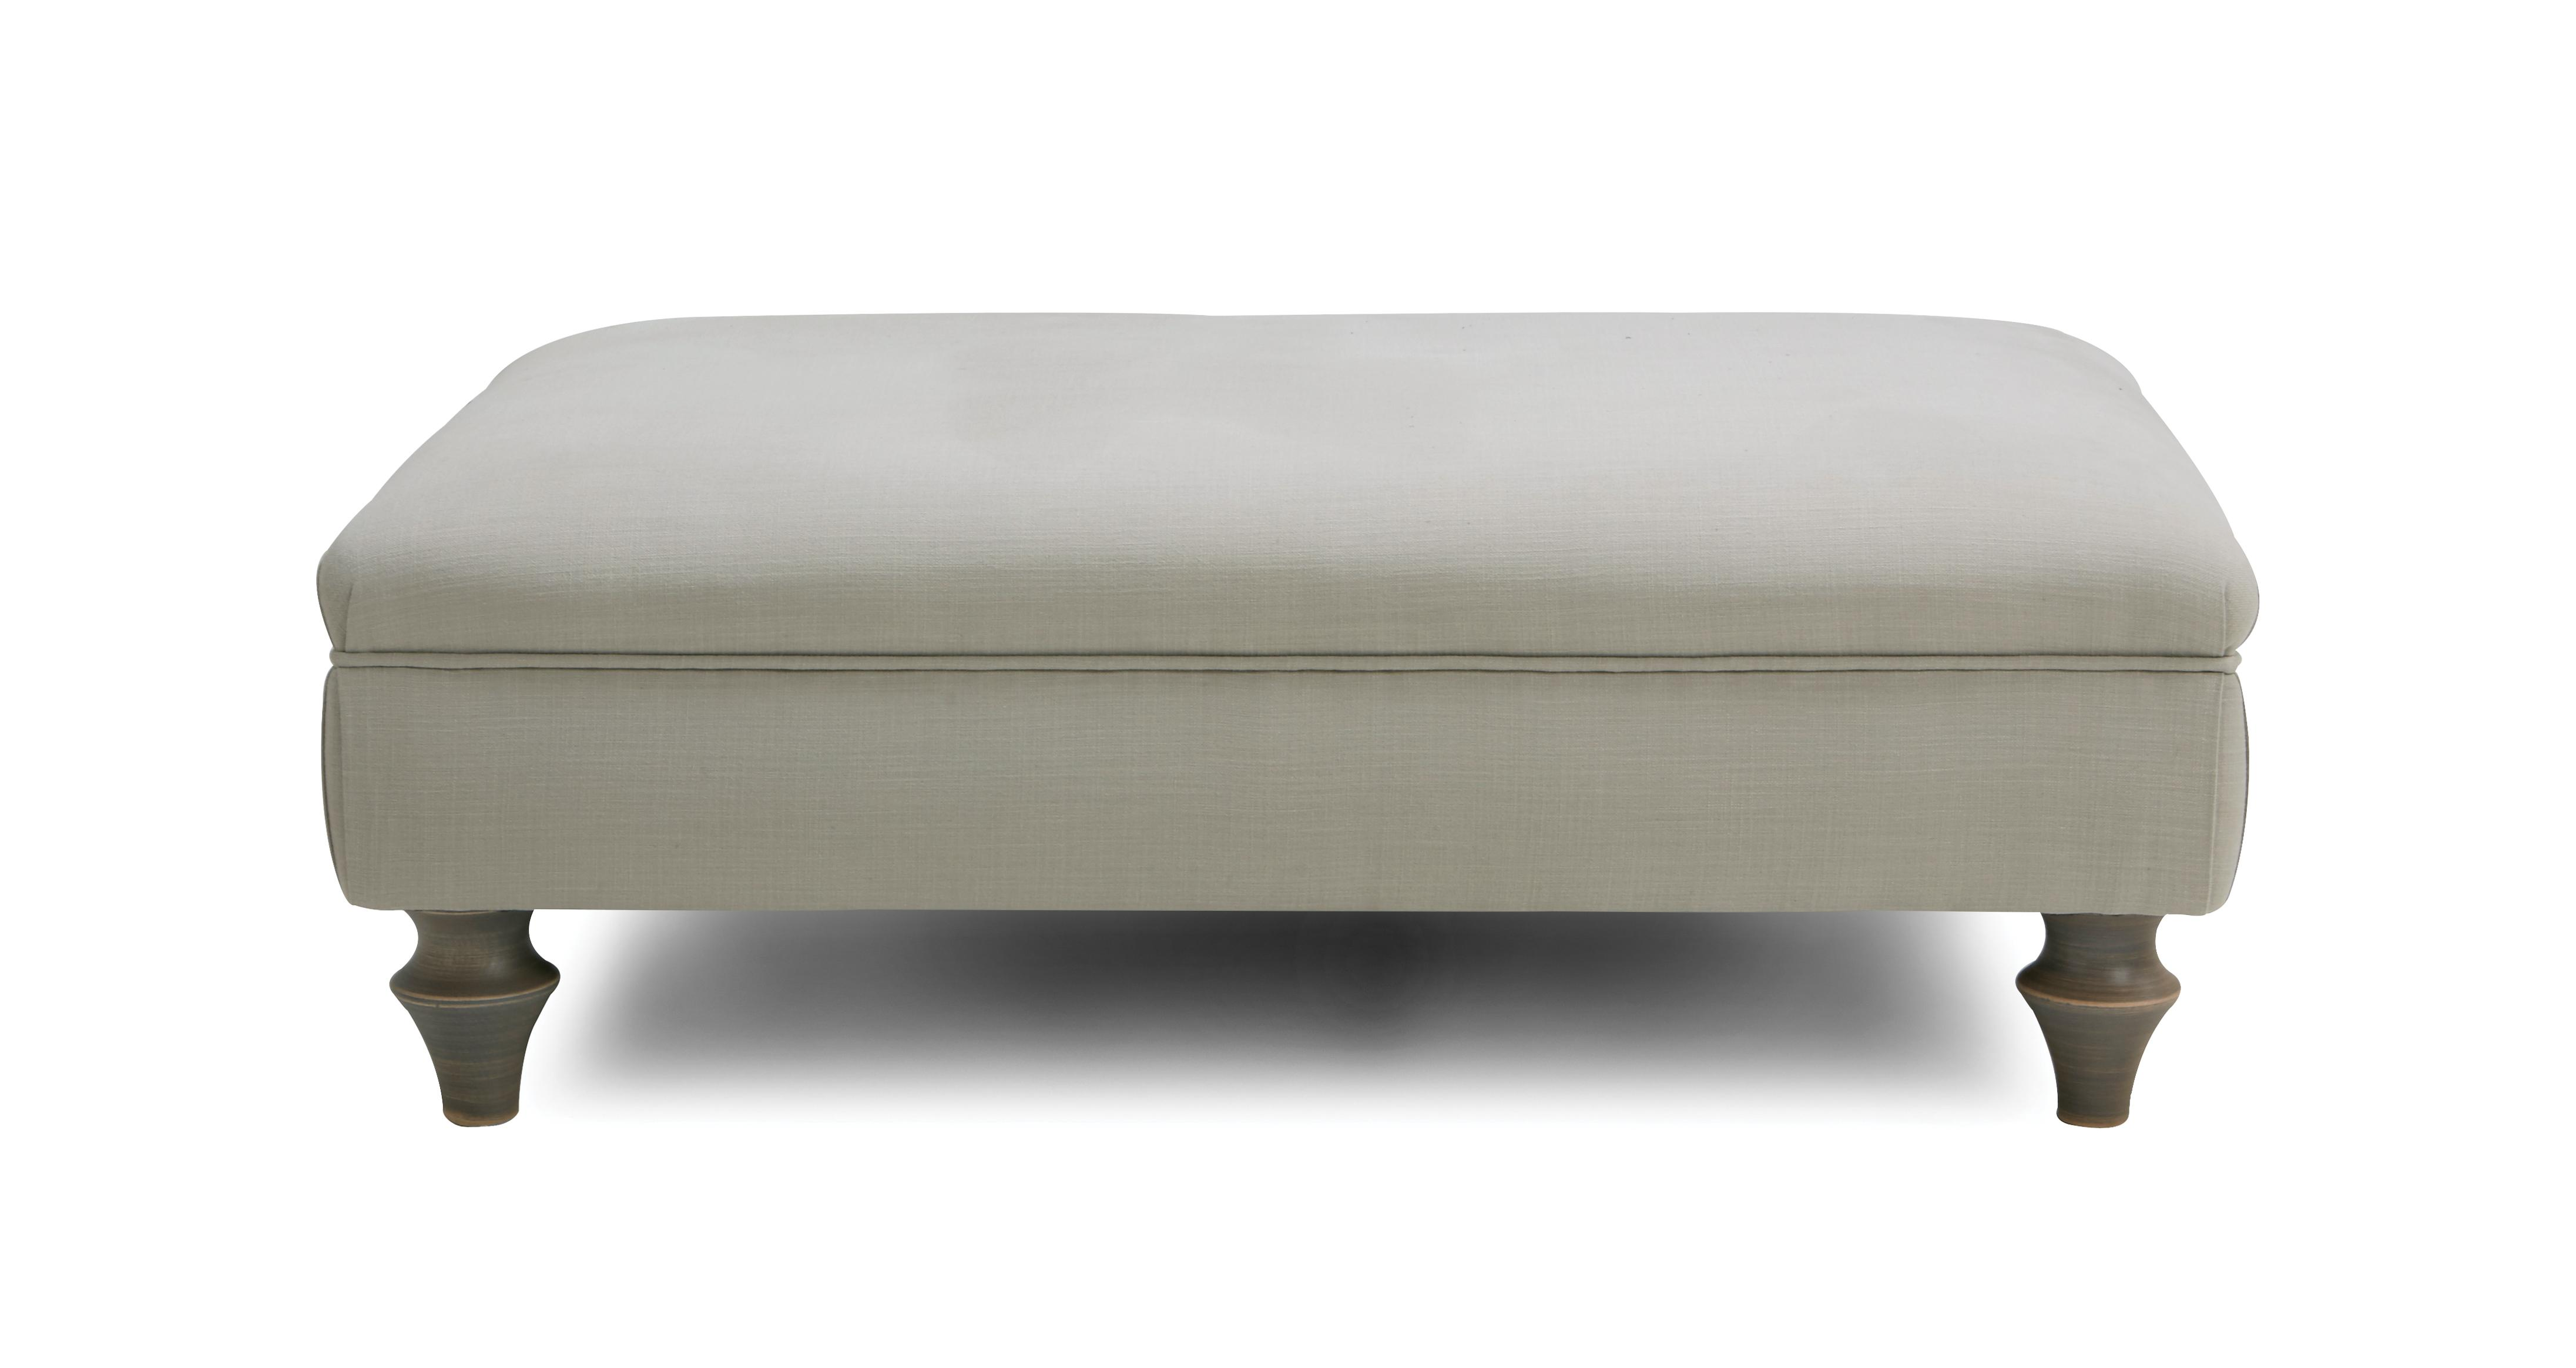 dfs cambridge sofa reviews designs pictures in sri lanka cotton footstool plain and floral